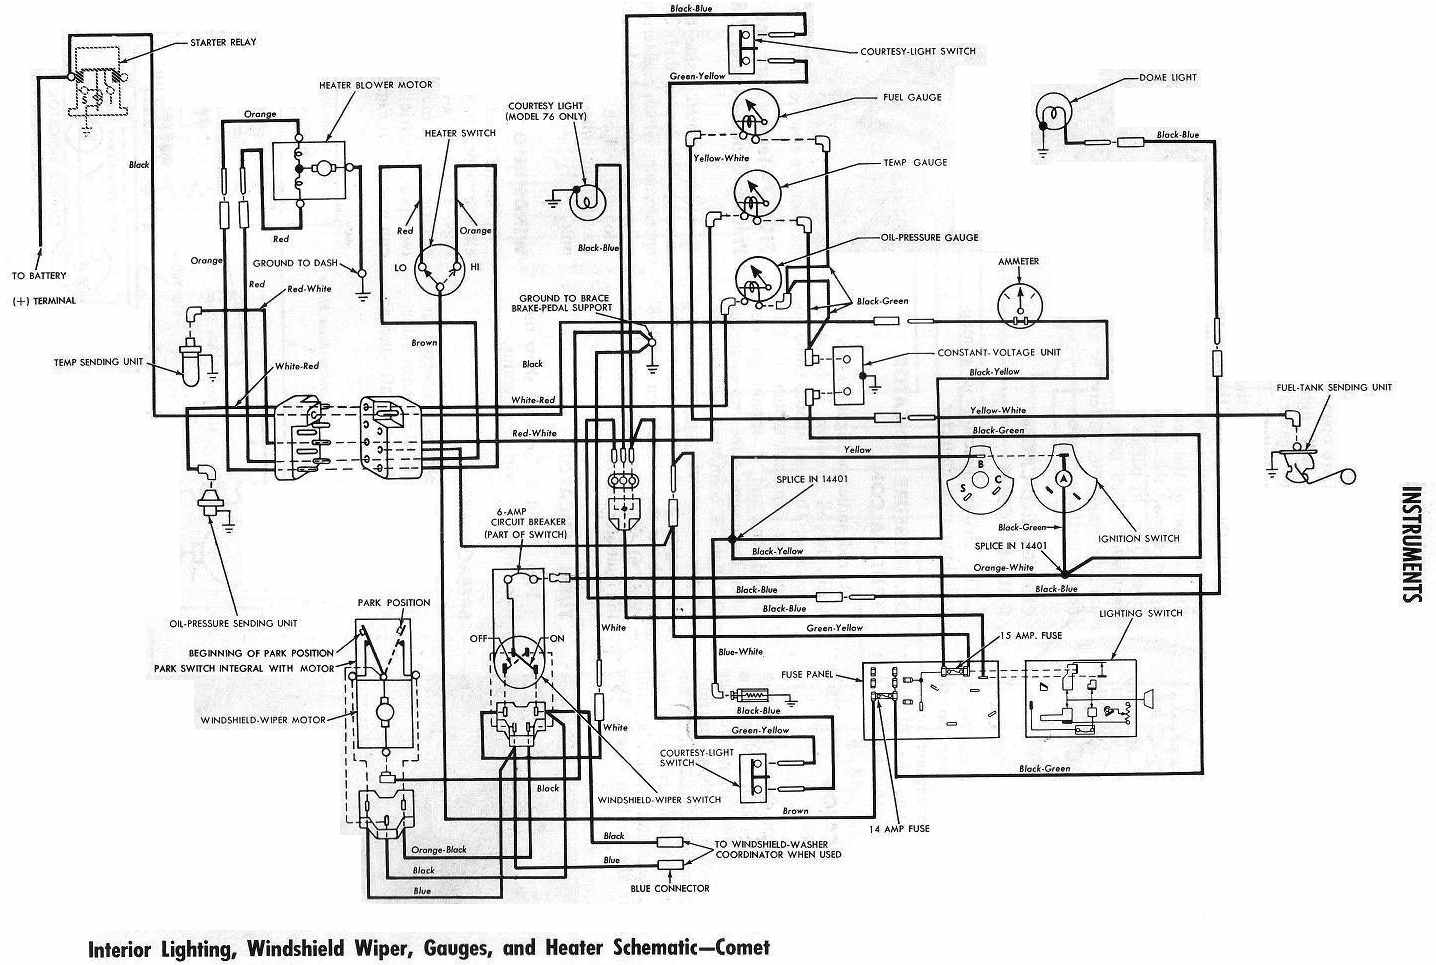 2003 cadillac cts engine diagram battery wiring for club car oil filter location get free image